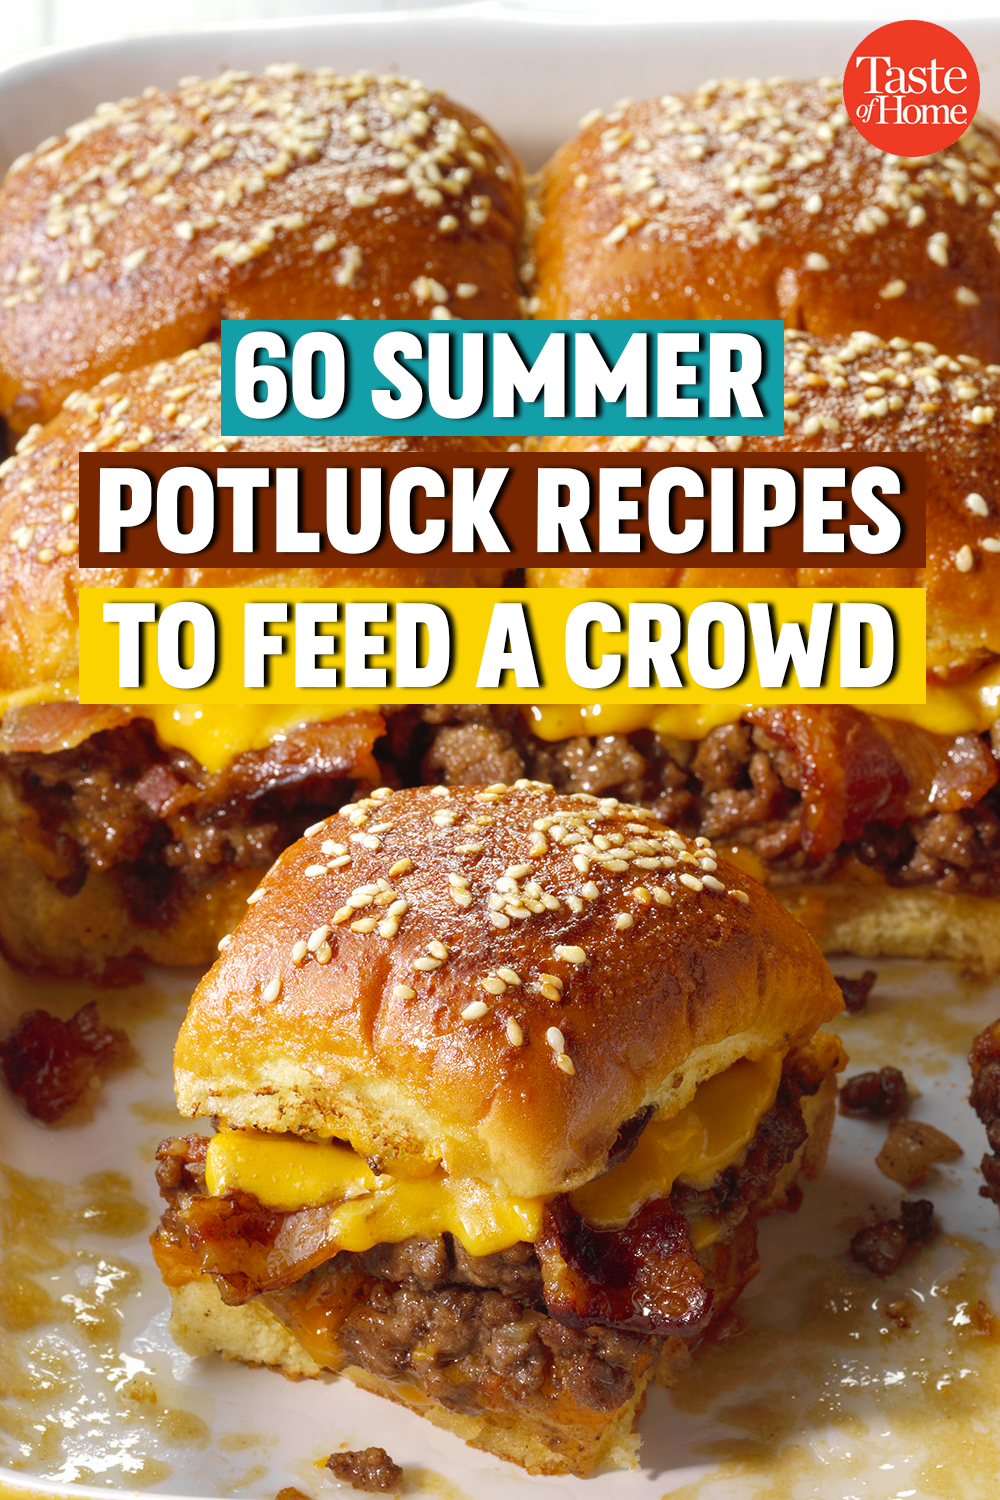 60 Summer Potluck Recipes to Feed a Crowd